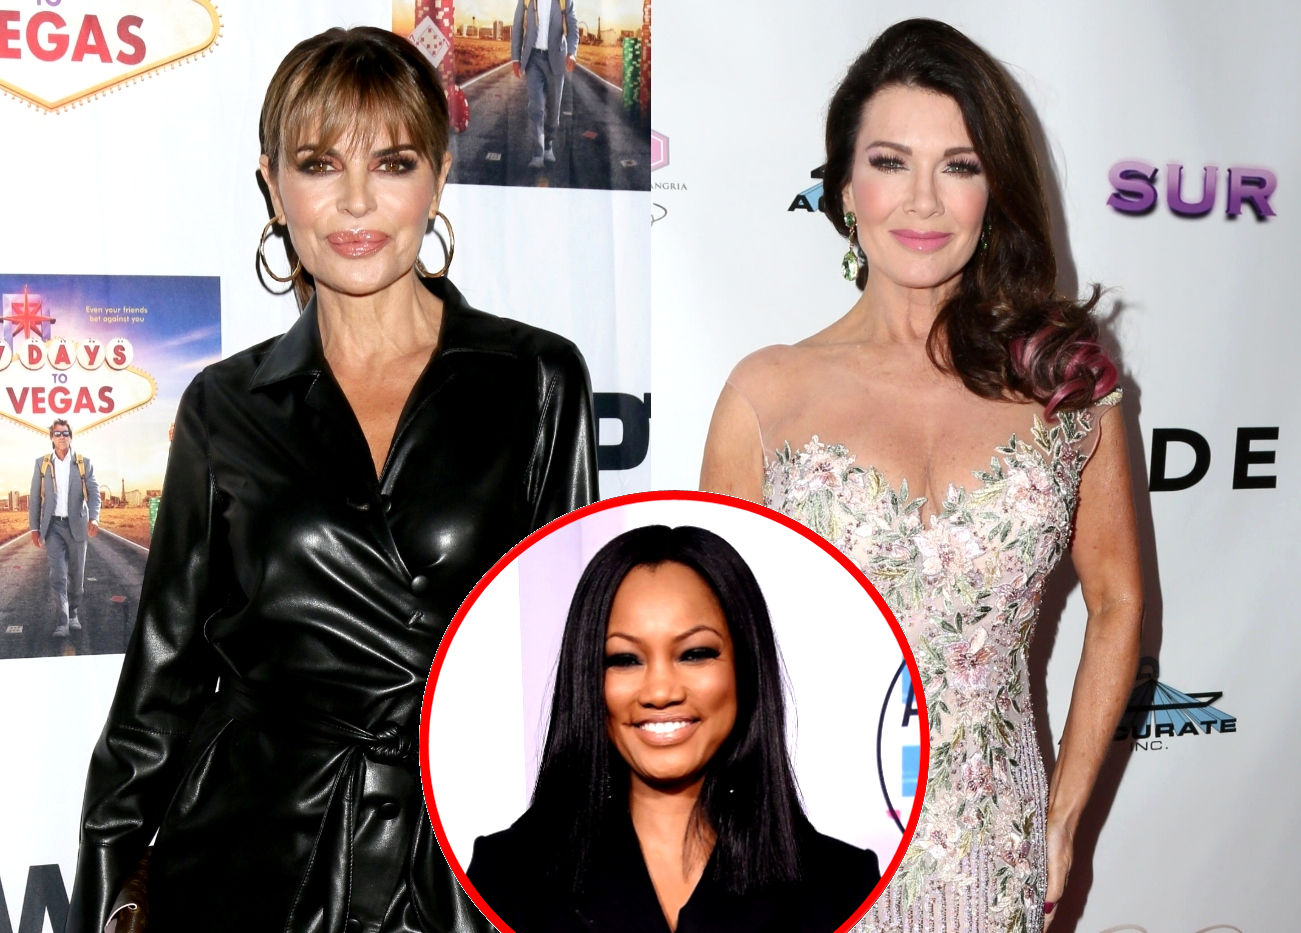 """Lisa Rinna Says Vanderpump """"Doesn't Have the Balls"""" to Return to RHOBH, Explains Why She Didn't Interrogate Erika, and Seemingly Agrees Garcelle is """"Inauthentic,"""" Plus Reunion Update"""